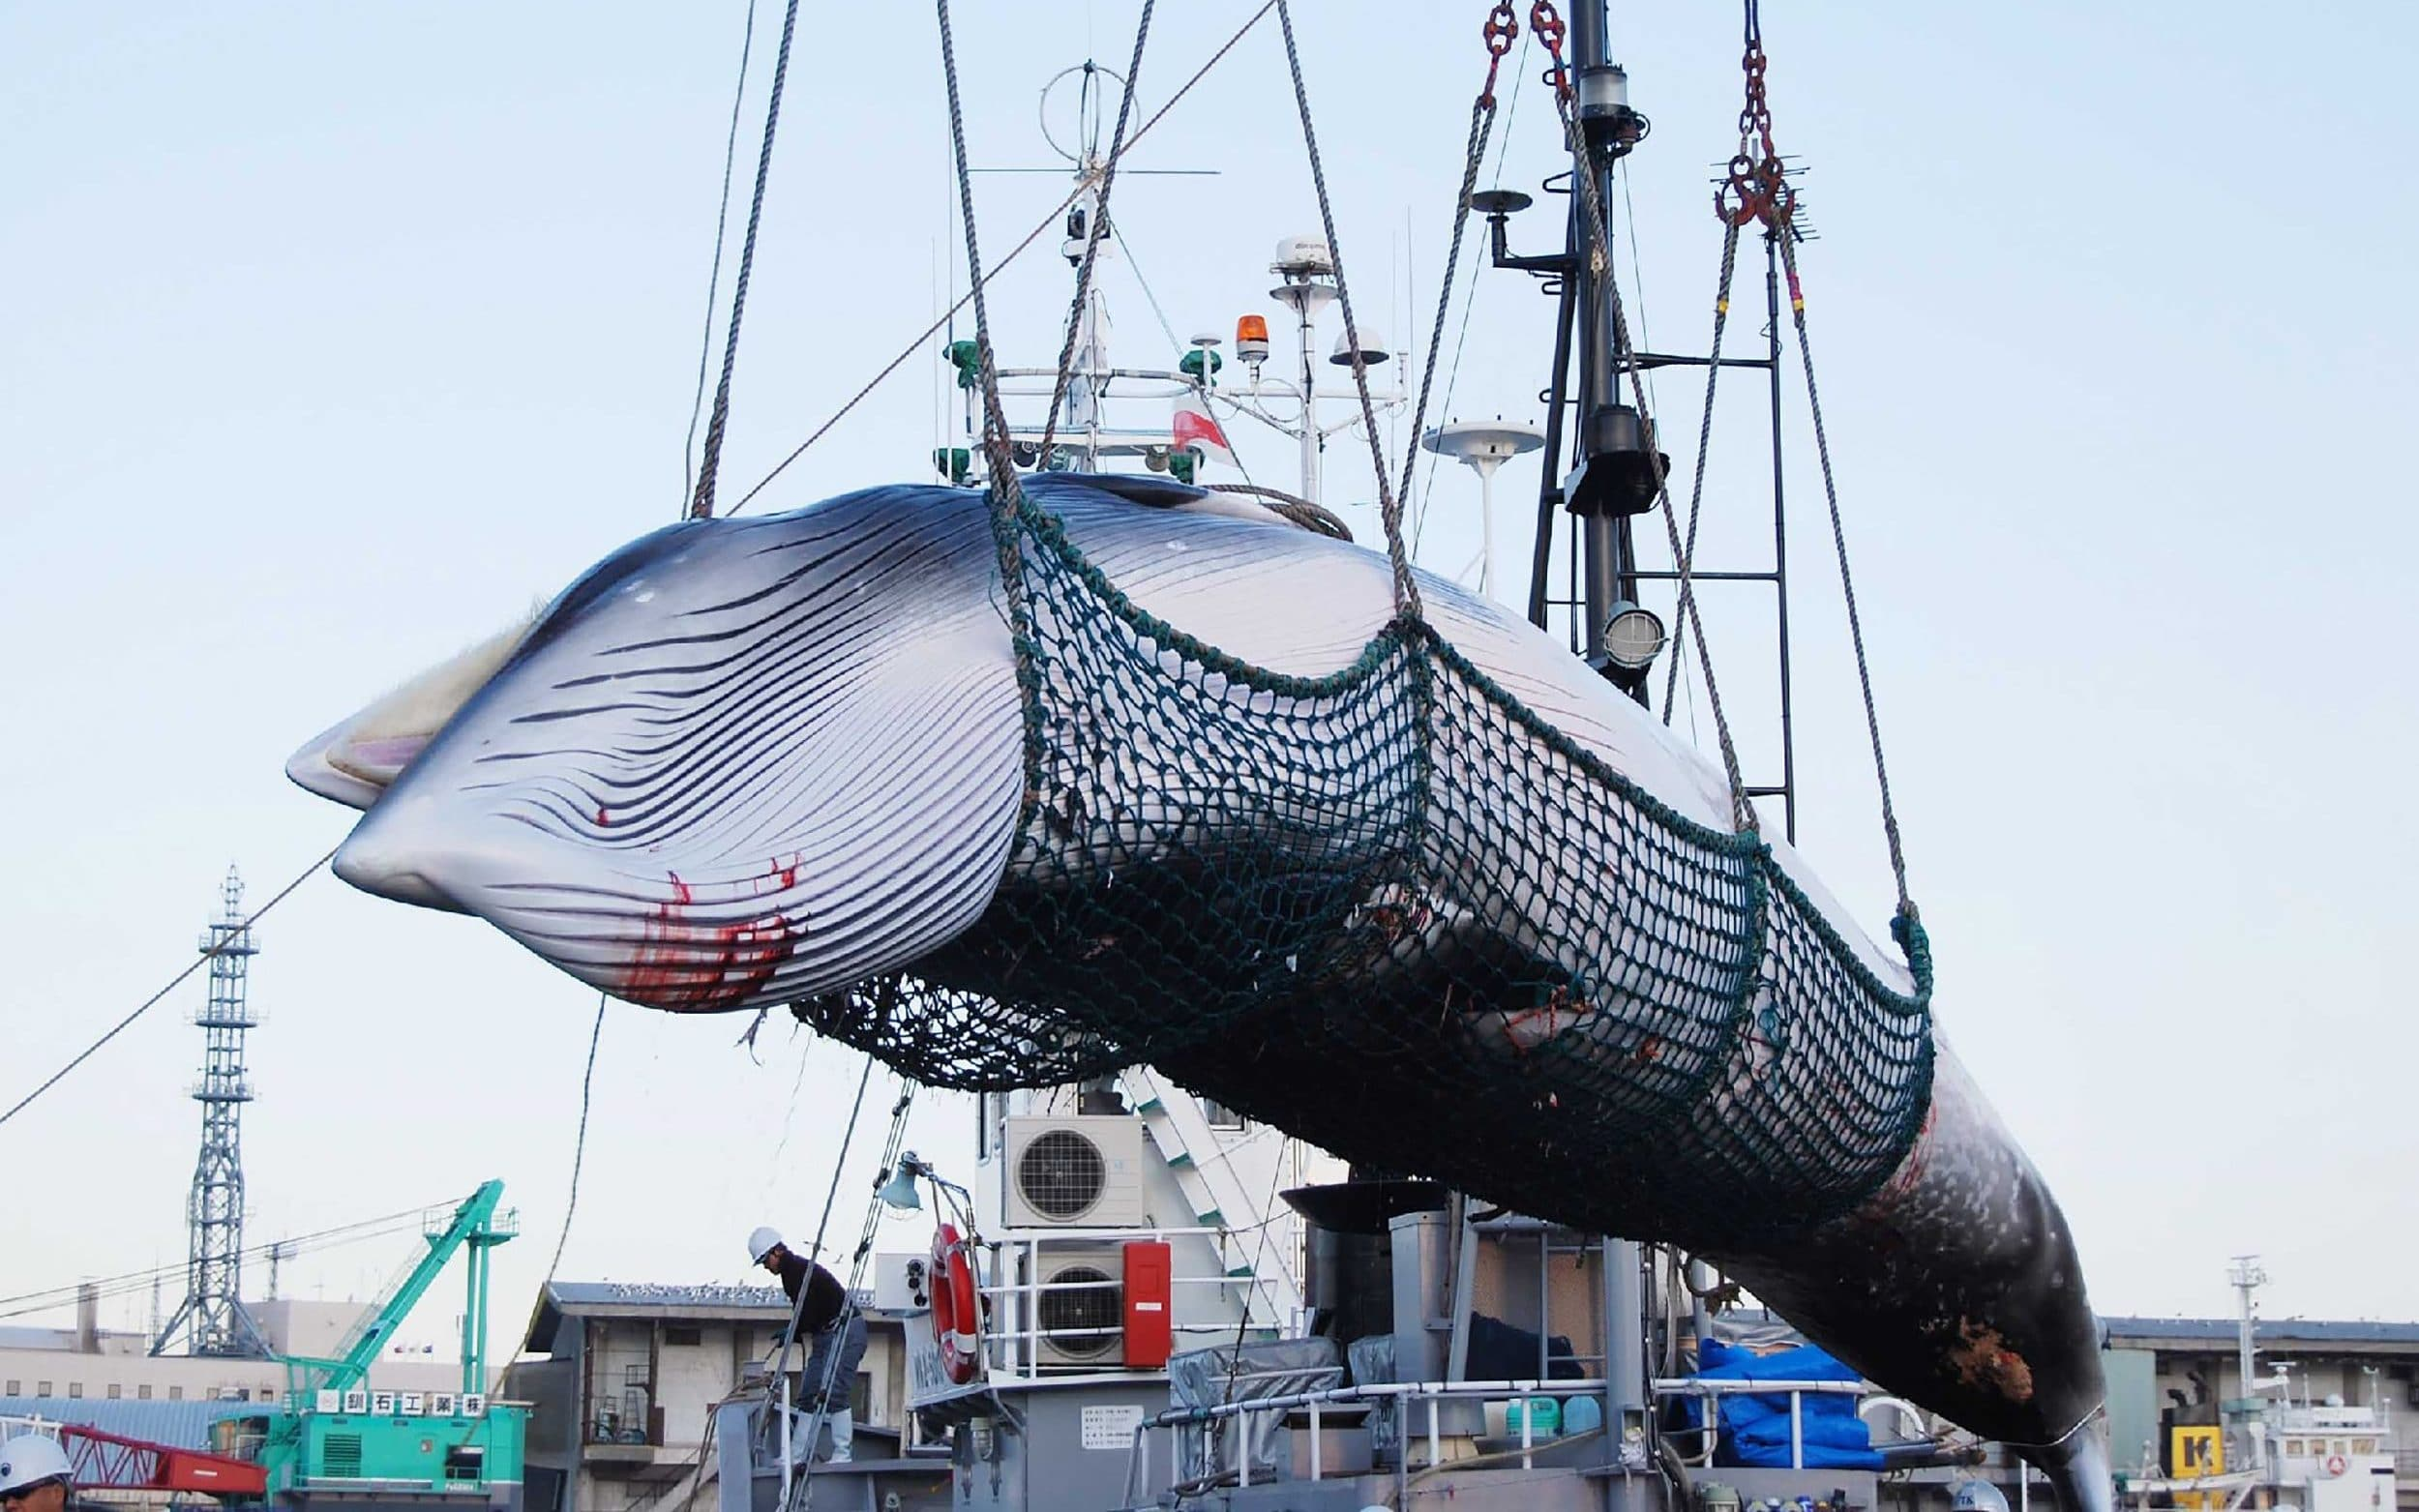 Japanese whaling ships prepare first commercial hunt in more than 30 years